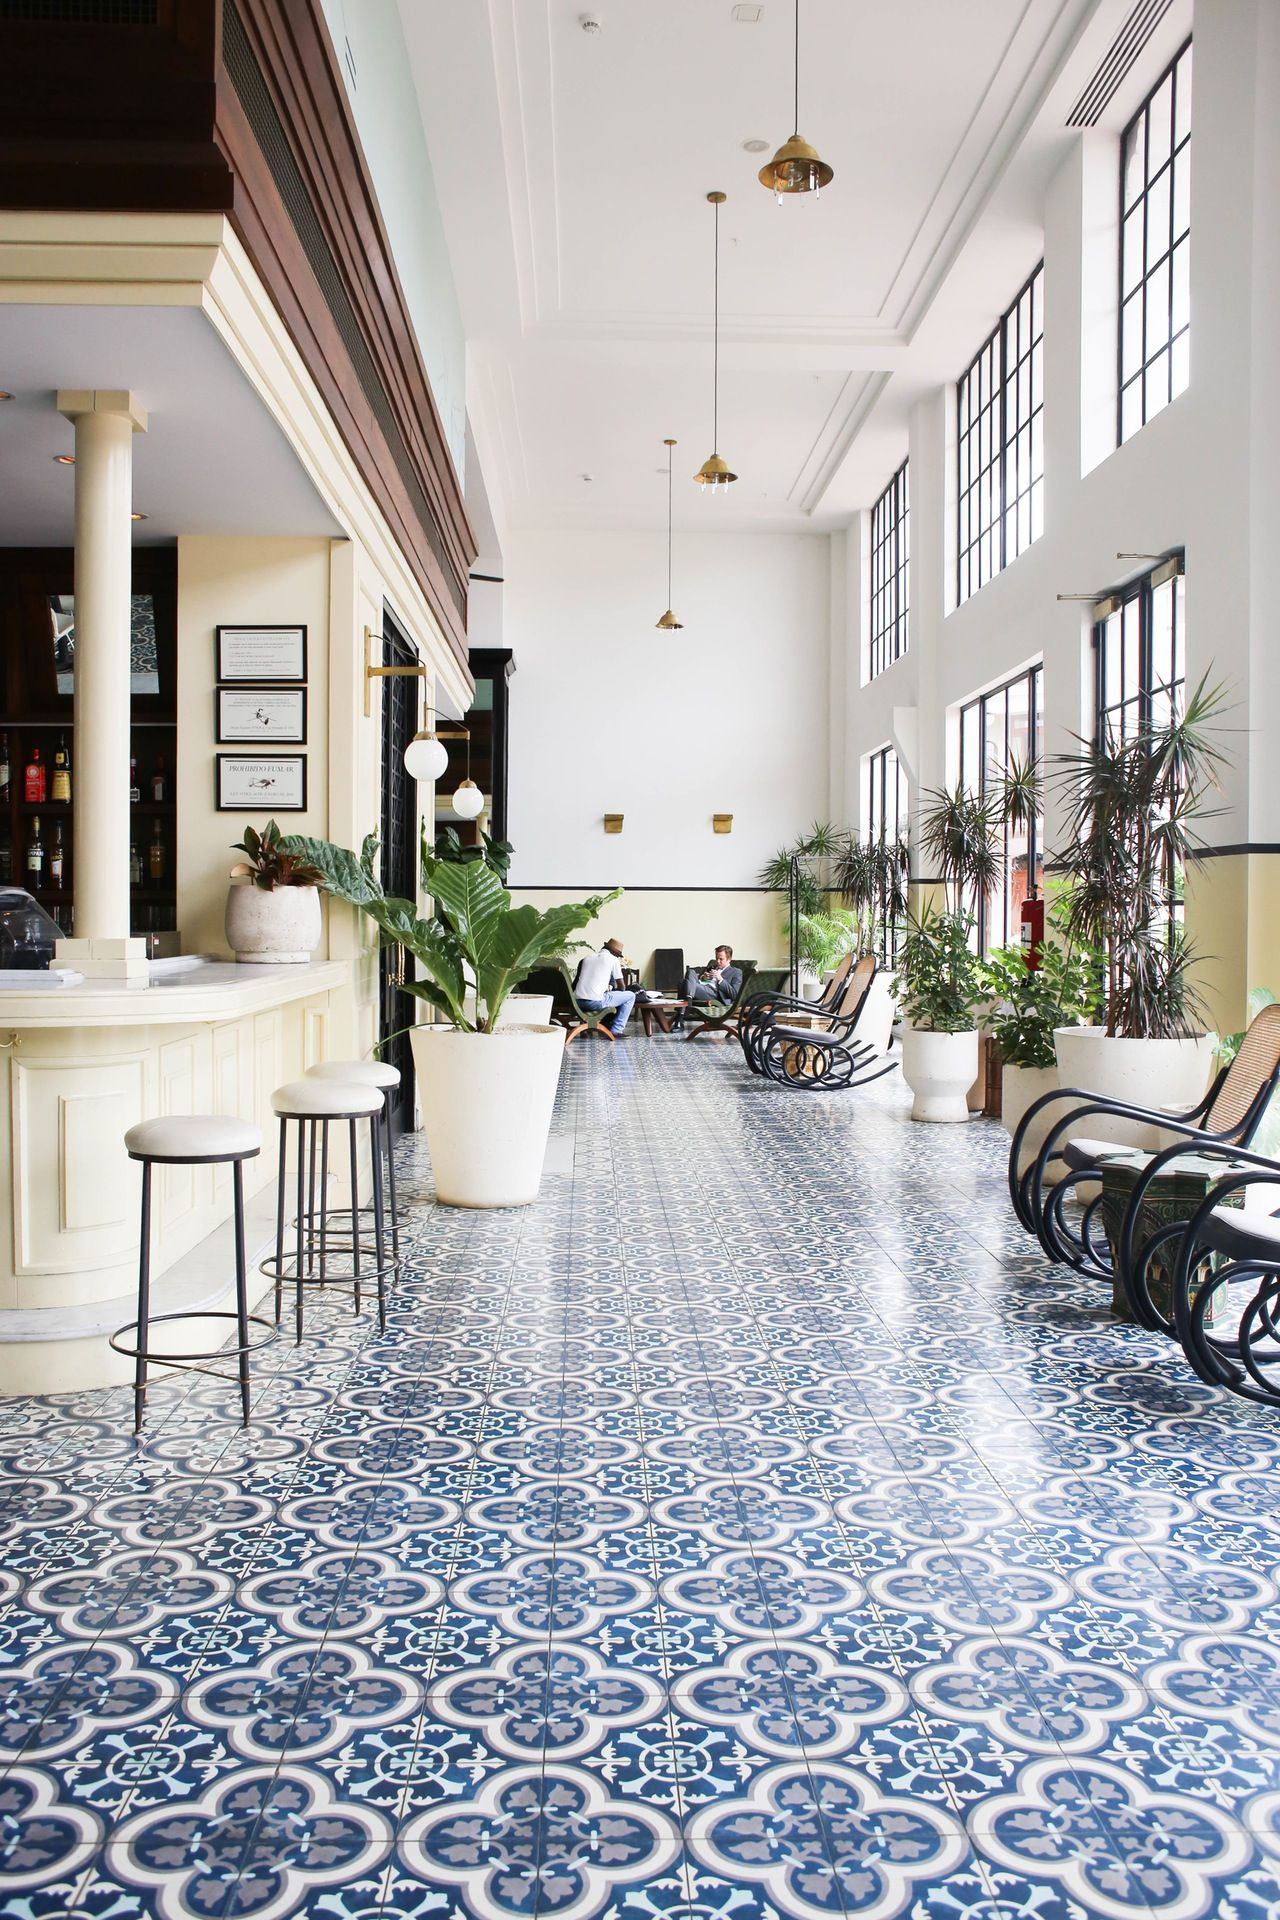 Old And New Mix In Panama City's American Trade Hotel